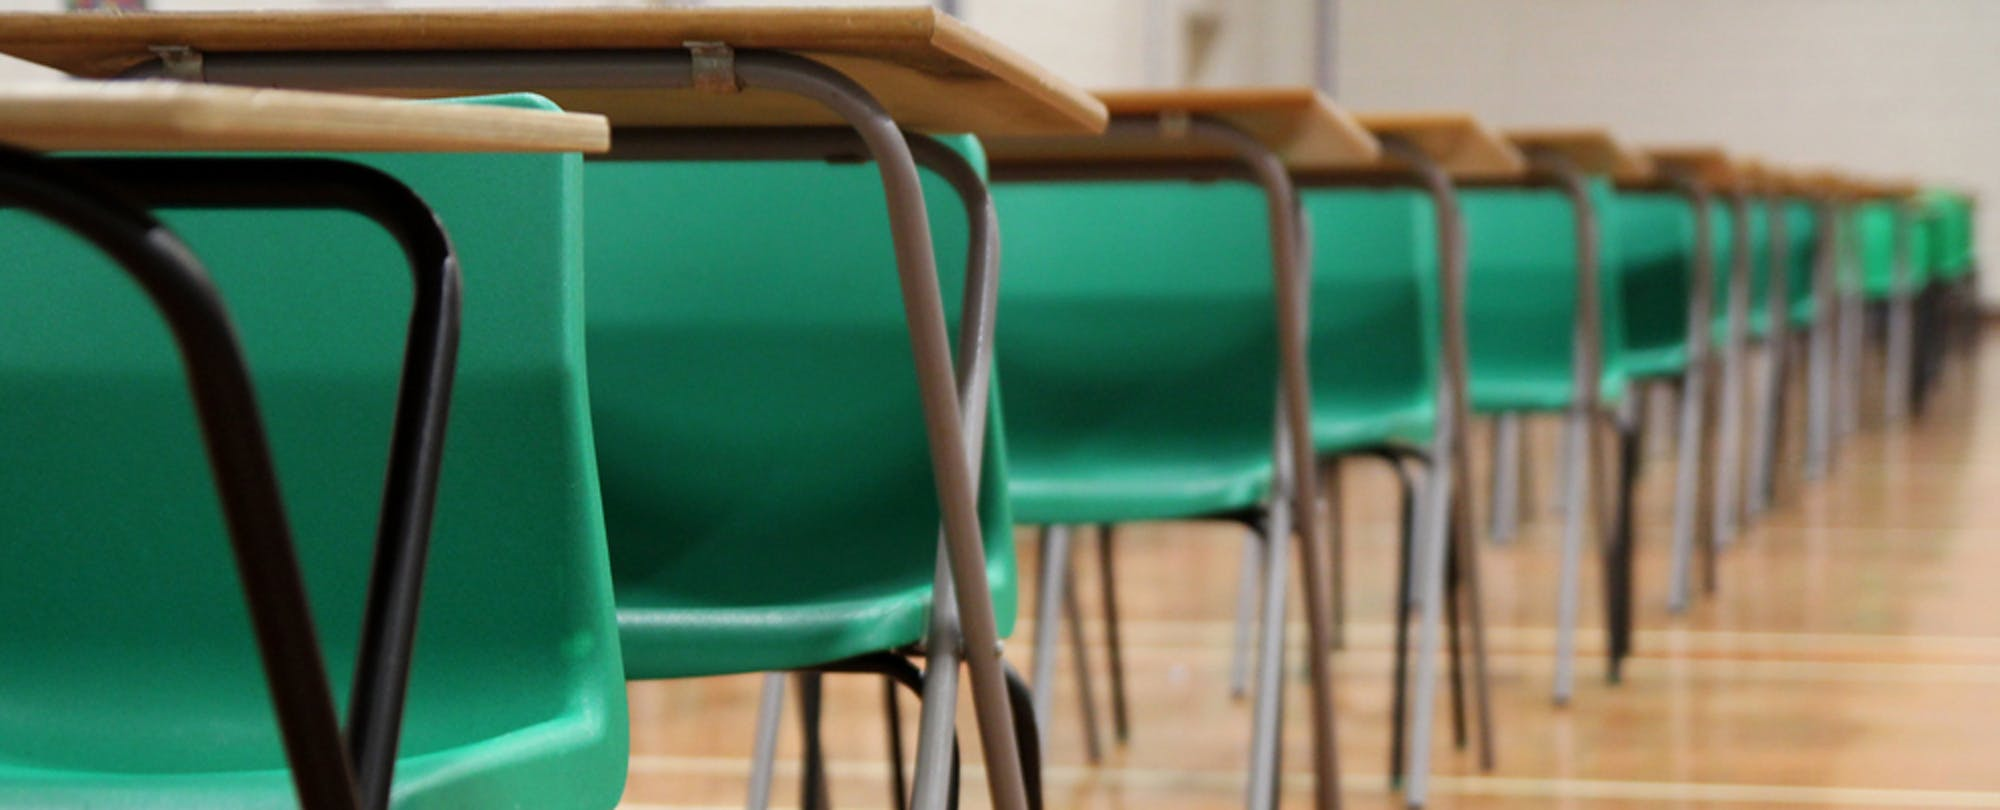 Quelling the Controversy Over Technology and Student Testing